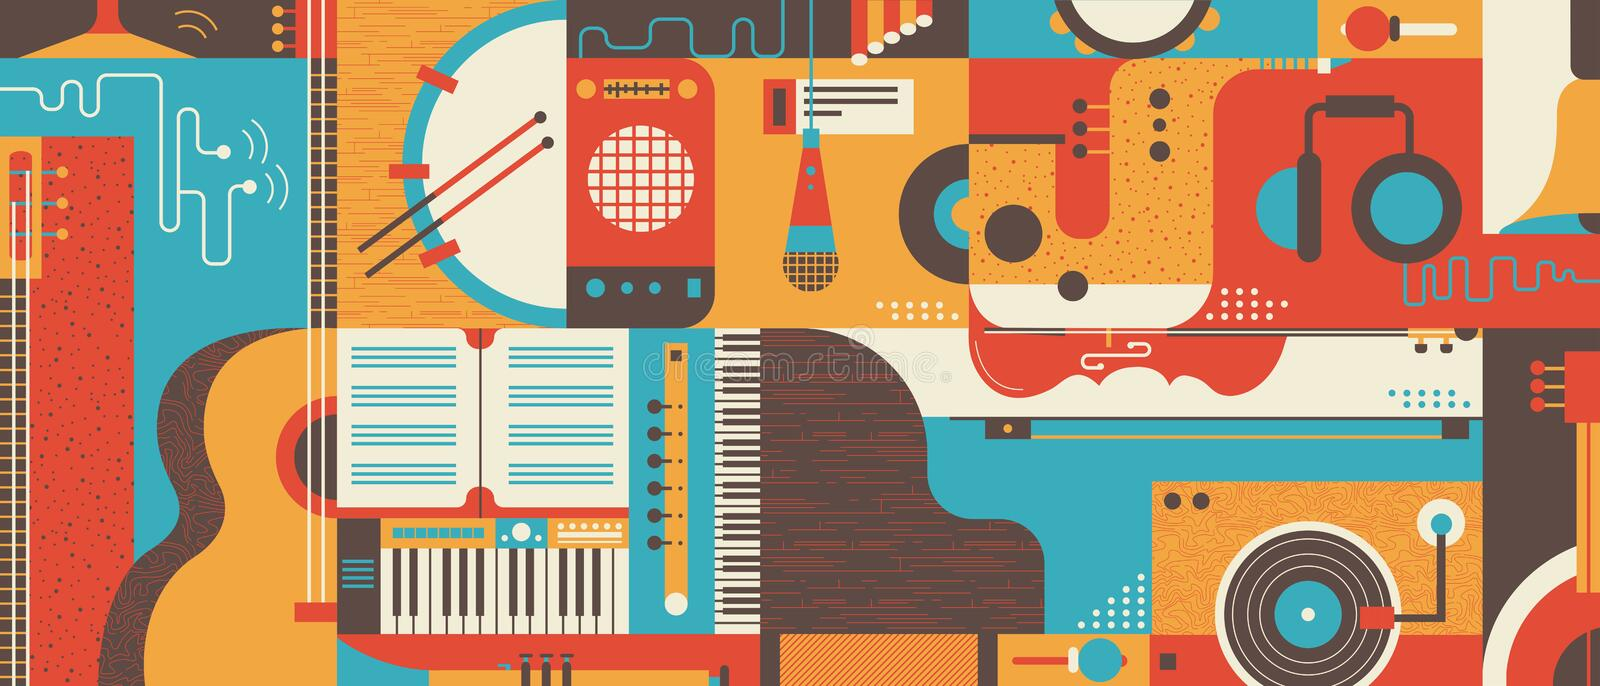 Abstract Music Background flat vector illustration royalty free illustration